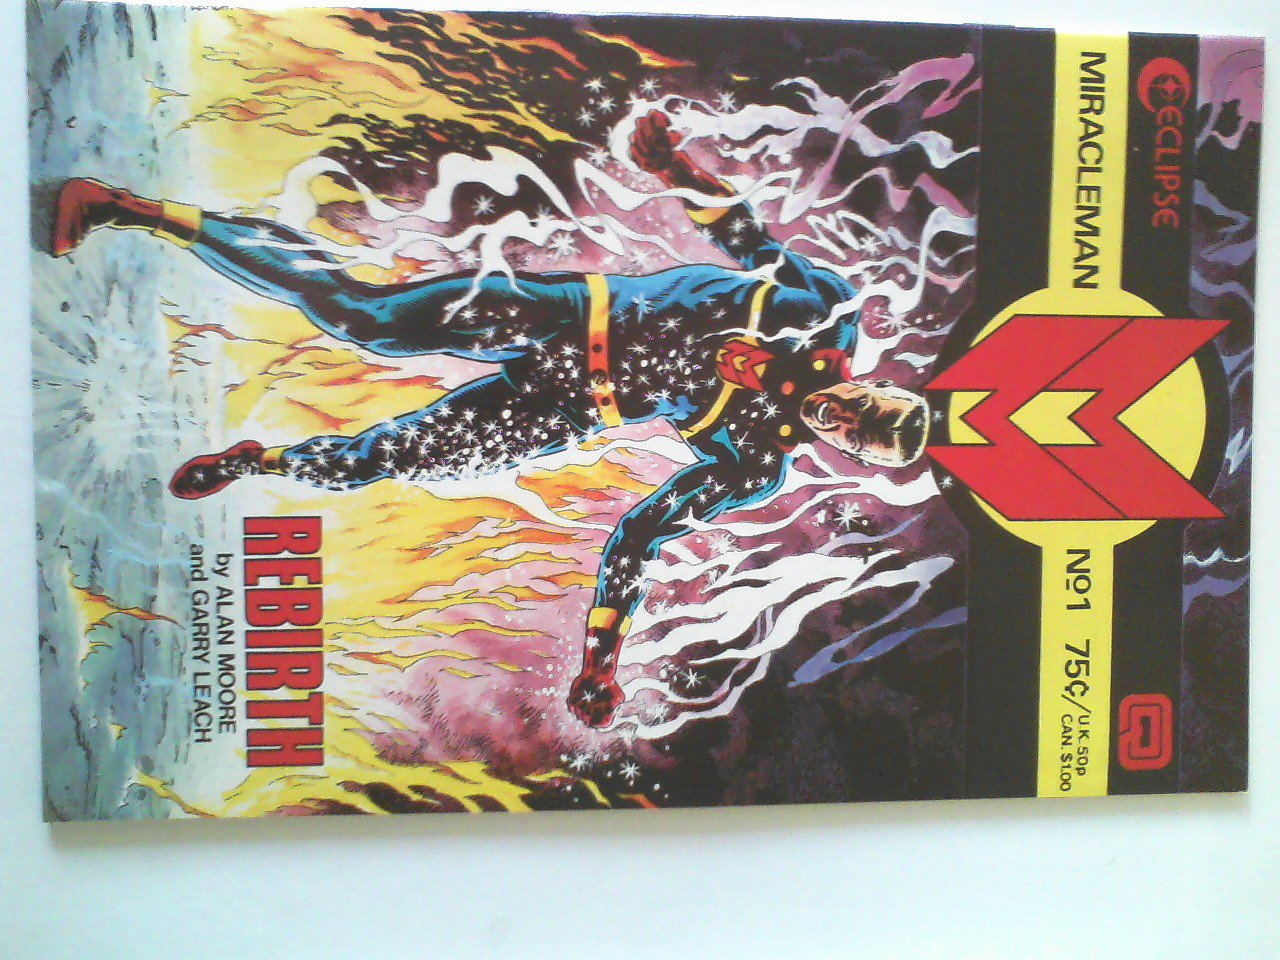 Miracleman #1-NM #2 1st print  by Alan Moore